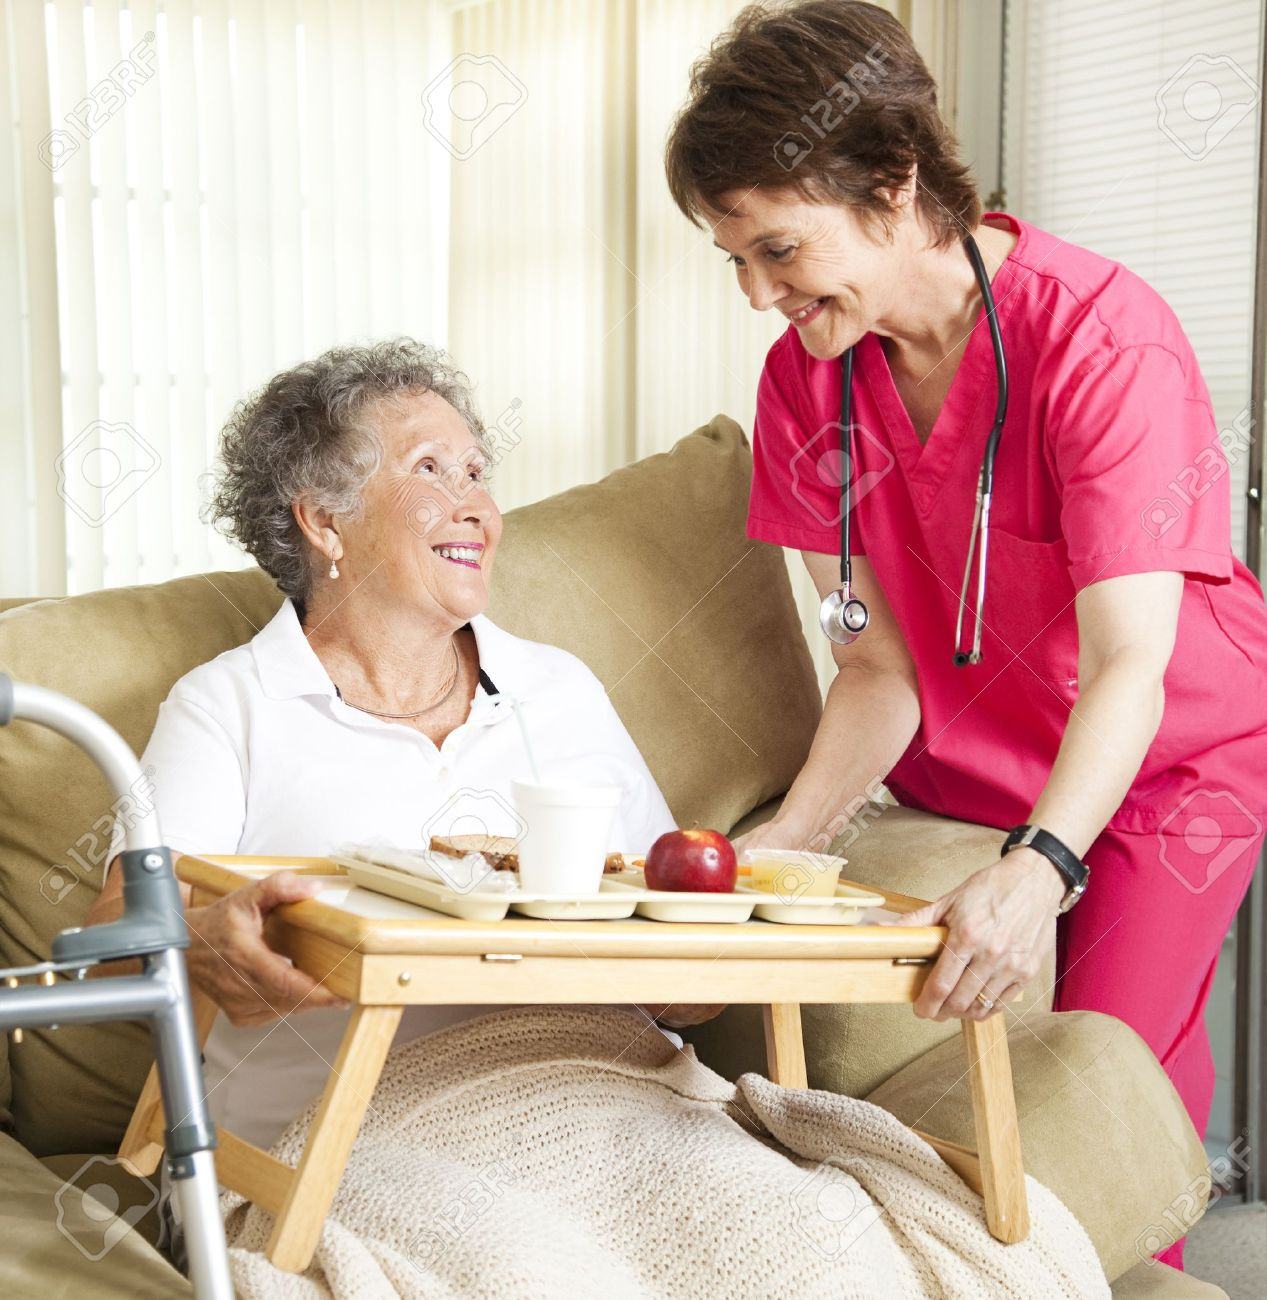 Retired senior woman in nursing home gets lunch from a caring nurse. Stock Photo - 8562736